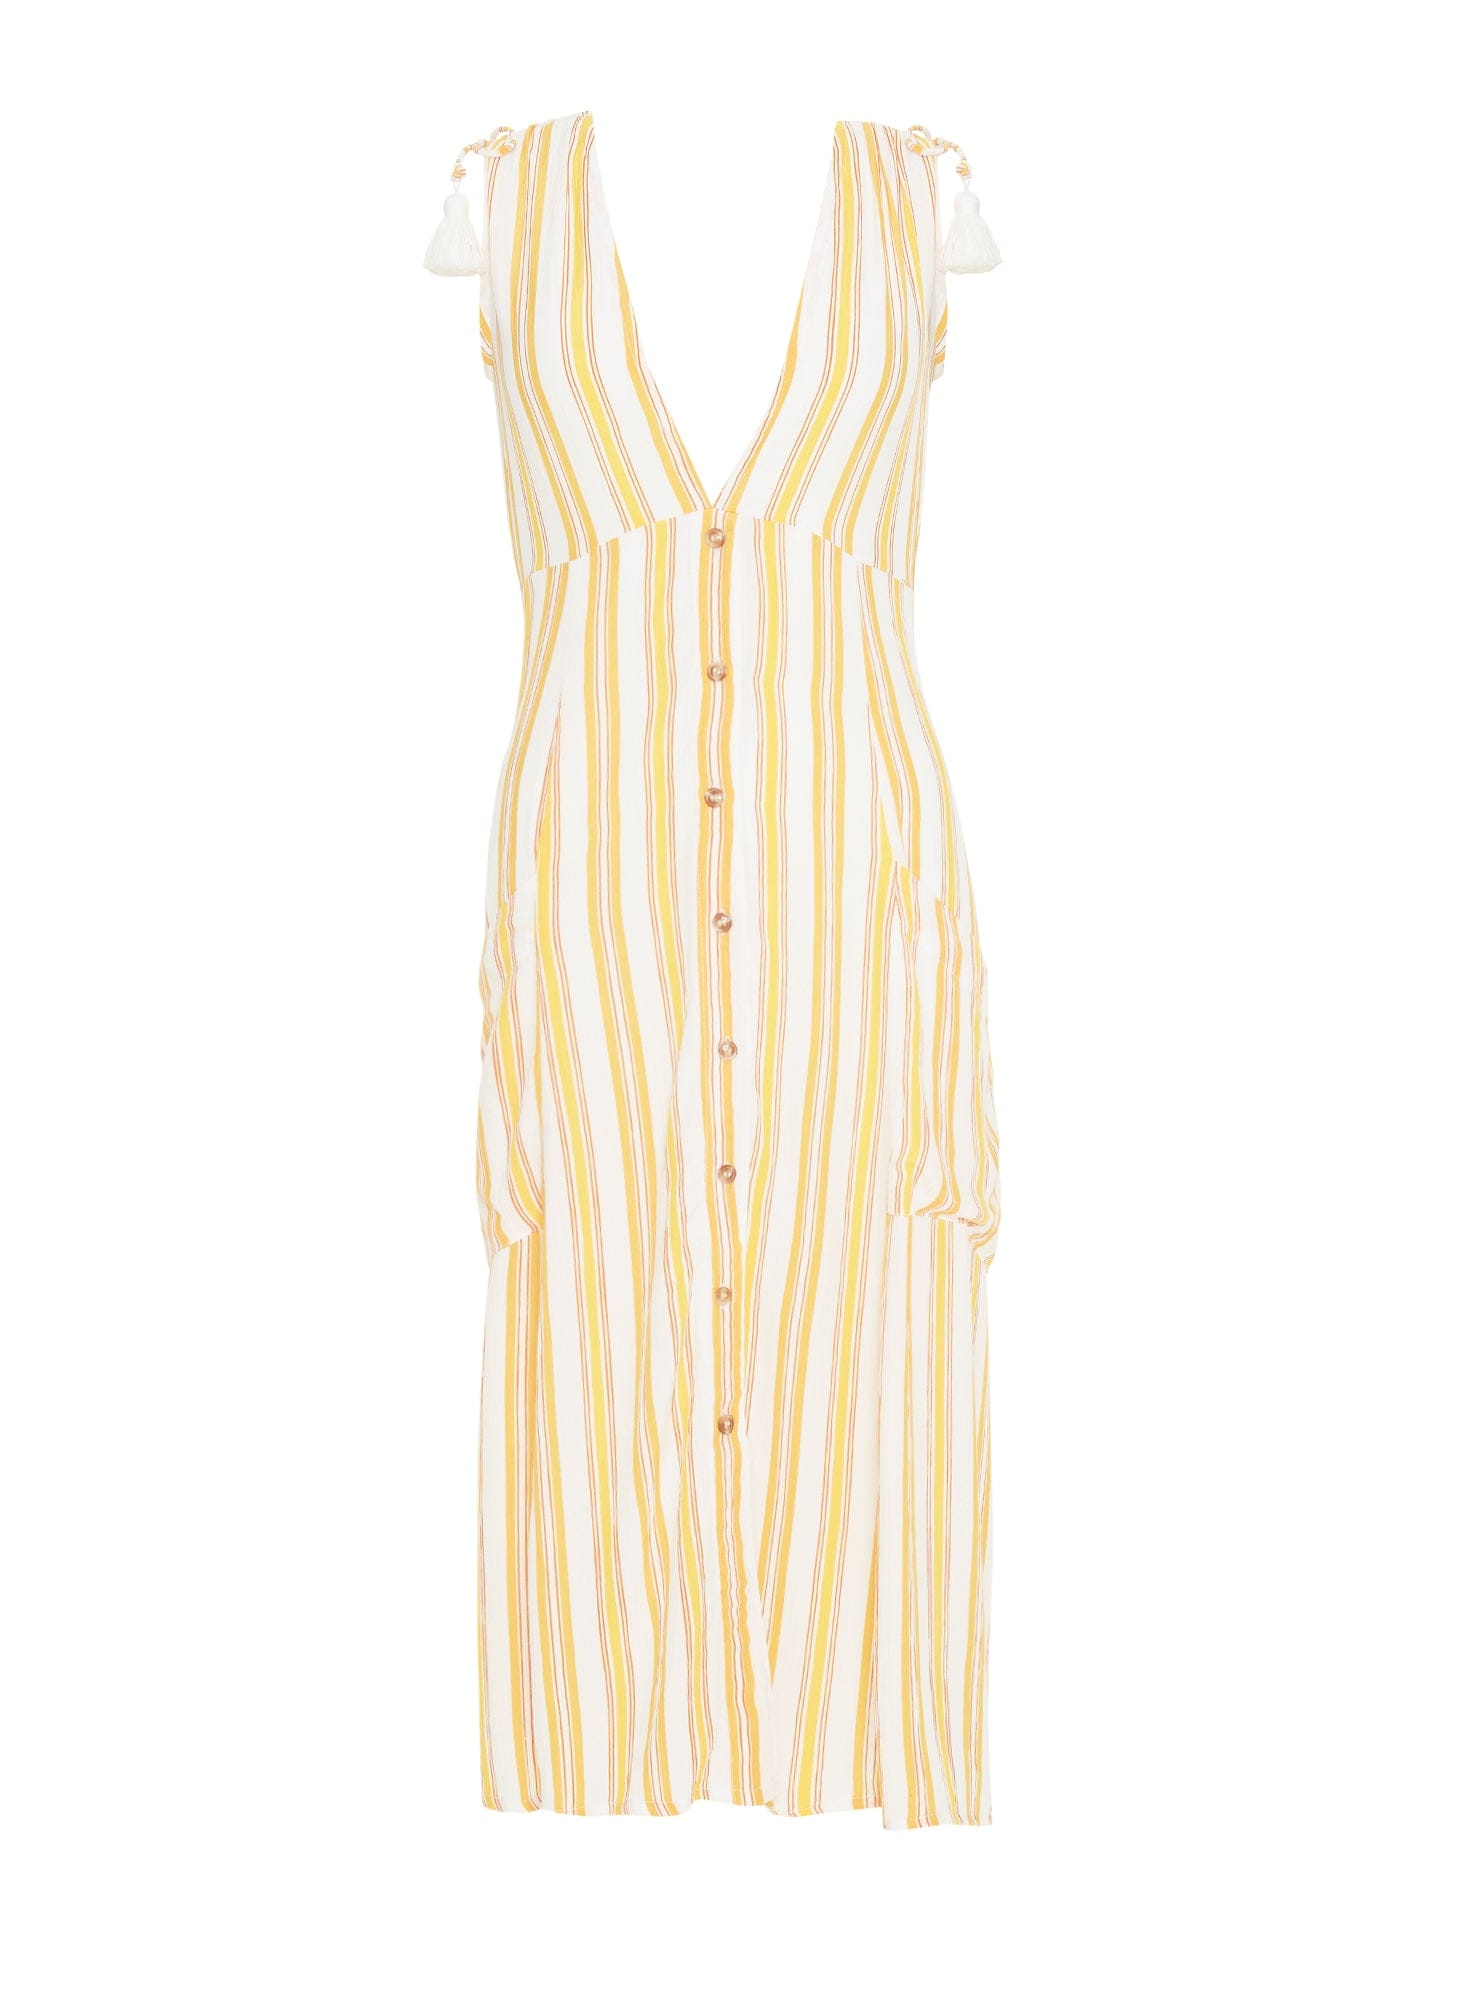 AZURE STRIPE PRINT - SUN - CLAUDIA MIDI DRESS